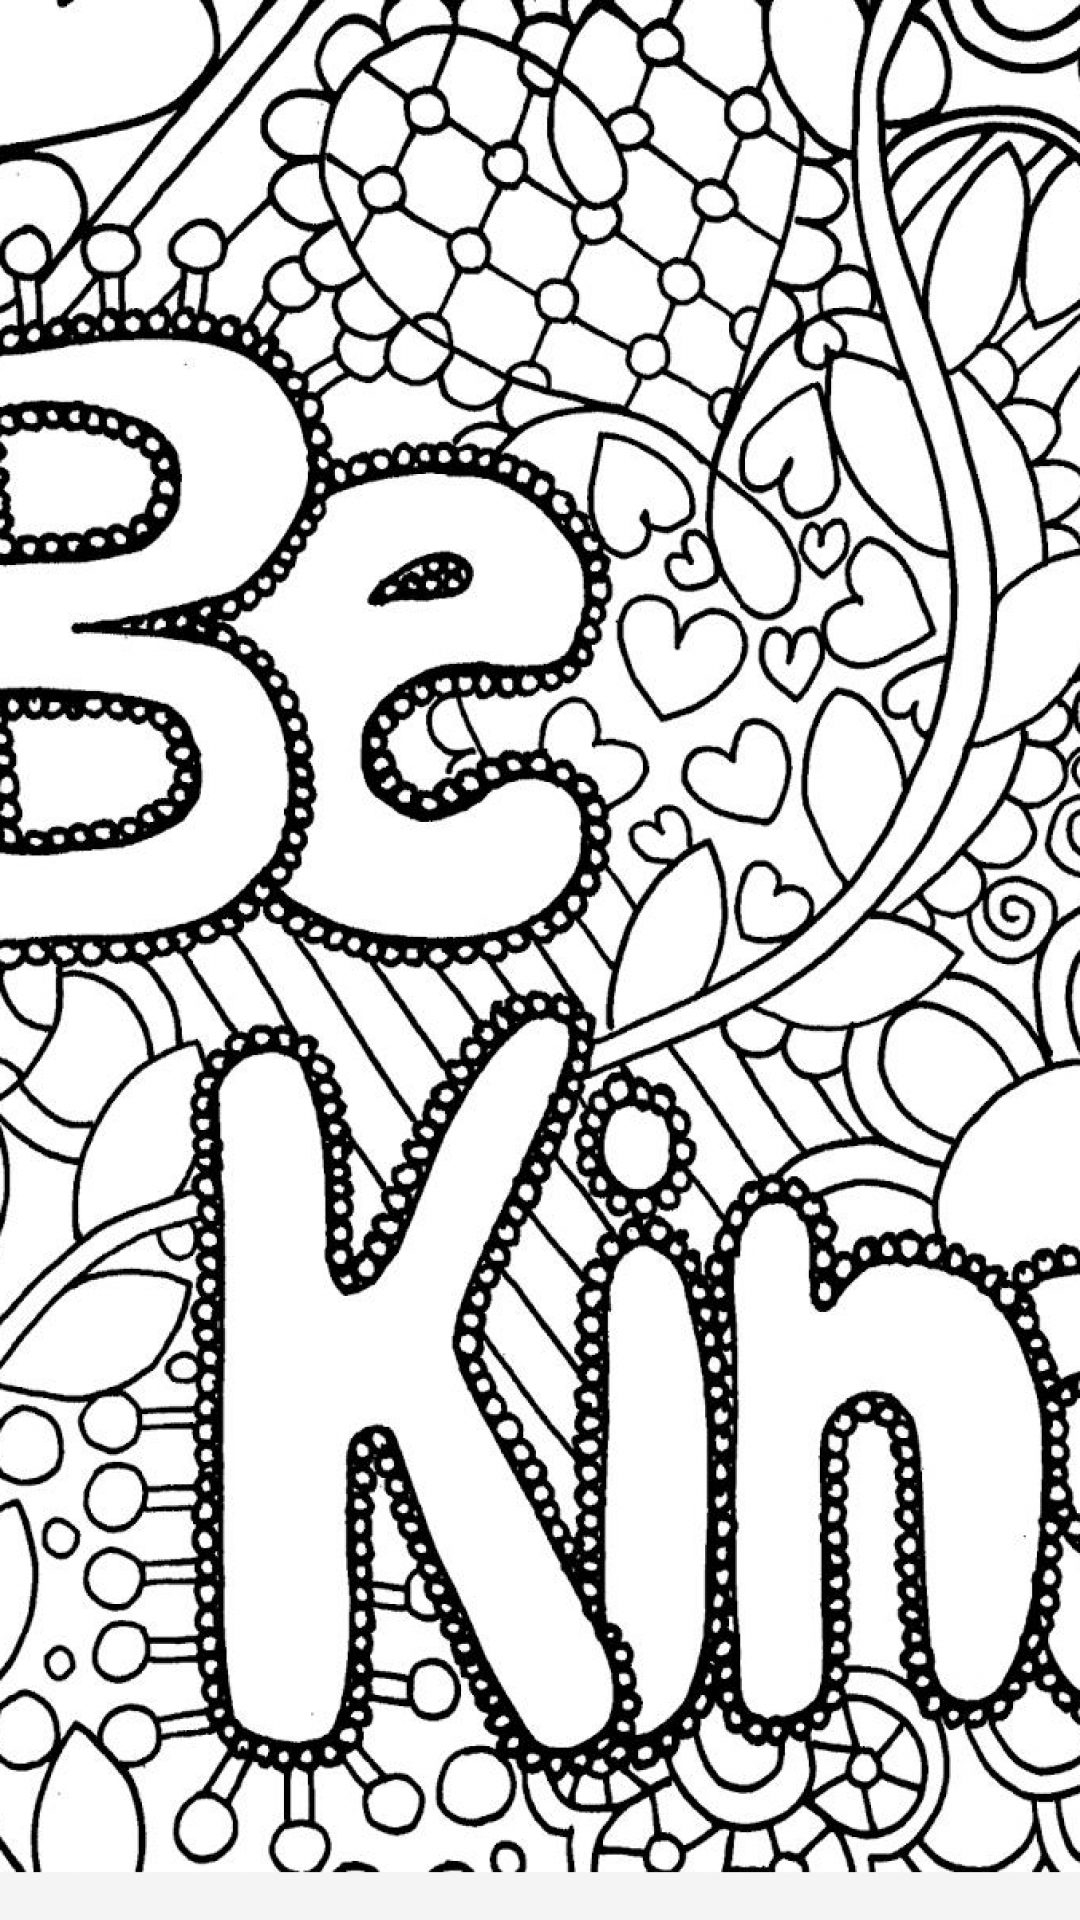 Graffiti Coloring Pages For Teenagers At Getcolorings